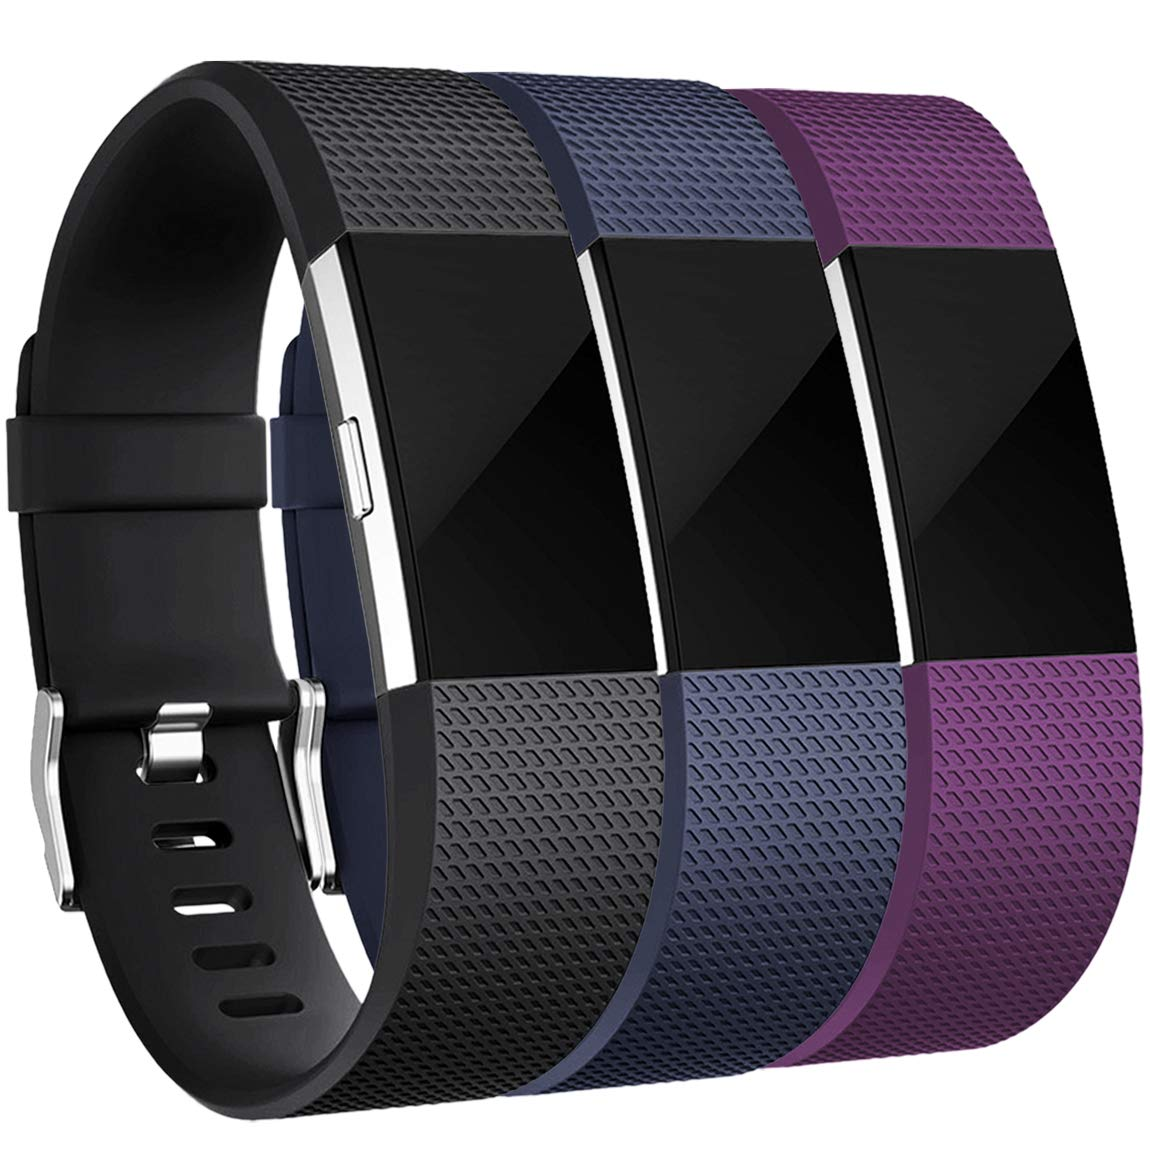 Maledan Bands Replacement Compatible with Fitbit Charge 2, 3-Pack, Small Black/Blue/Plum